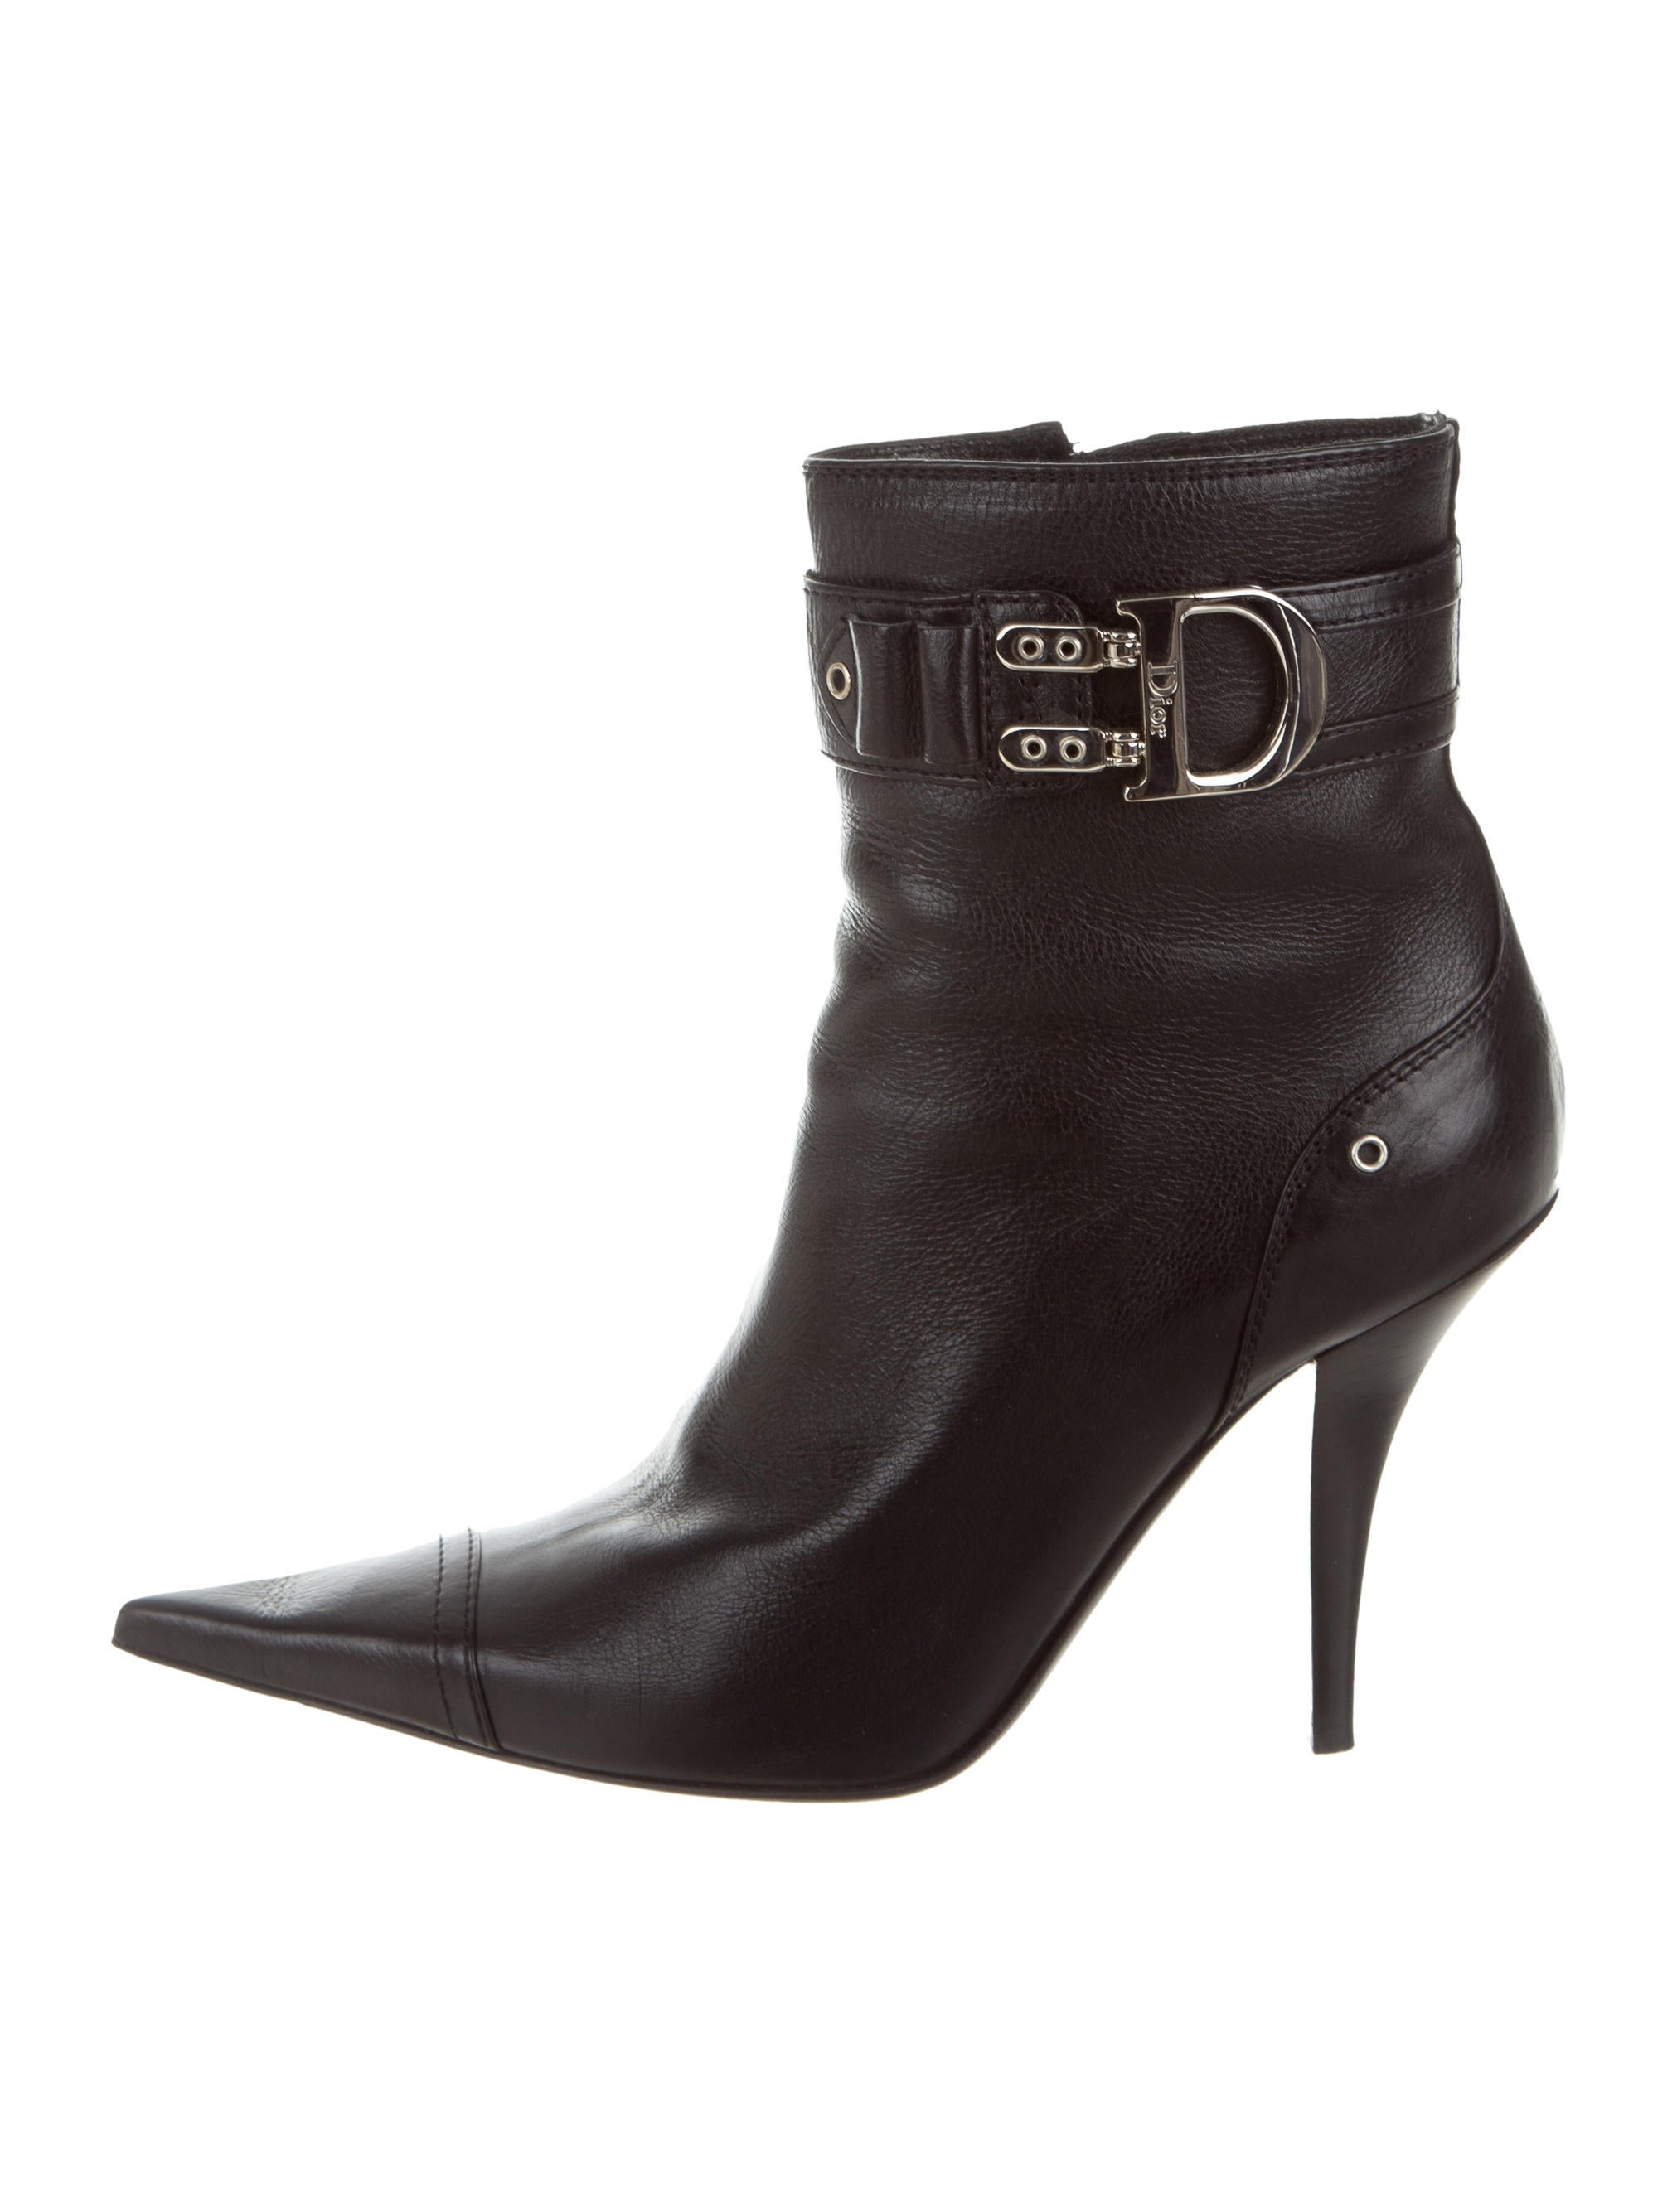 Christian Dior Logo Pointed-Toe Booties buy cheap good selling vaSoCr